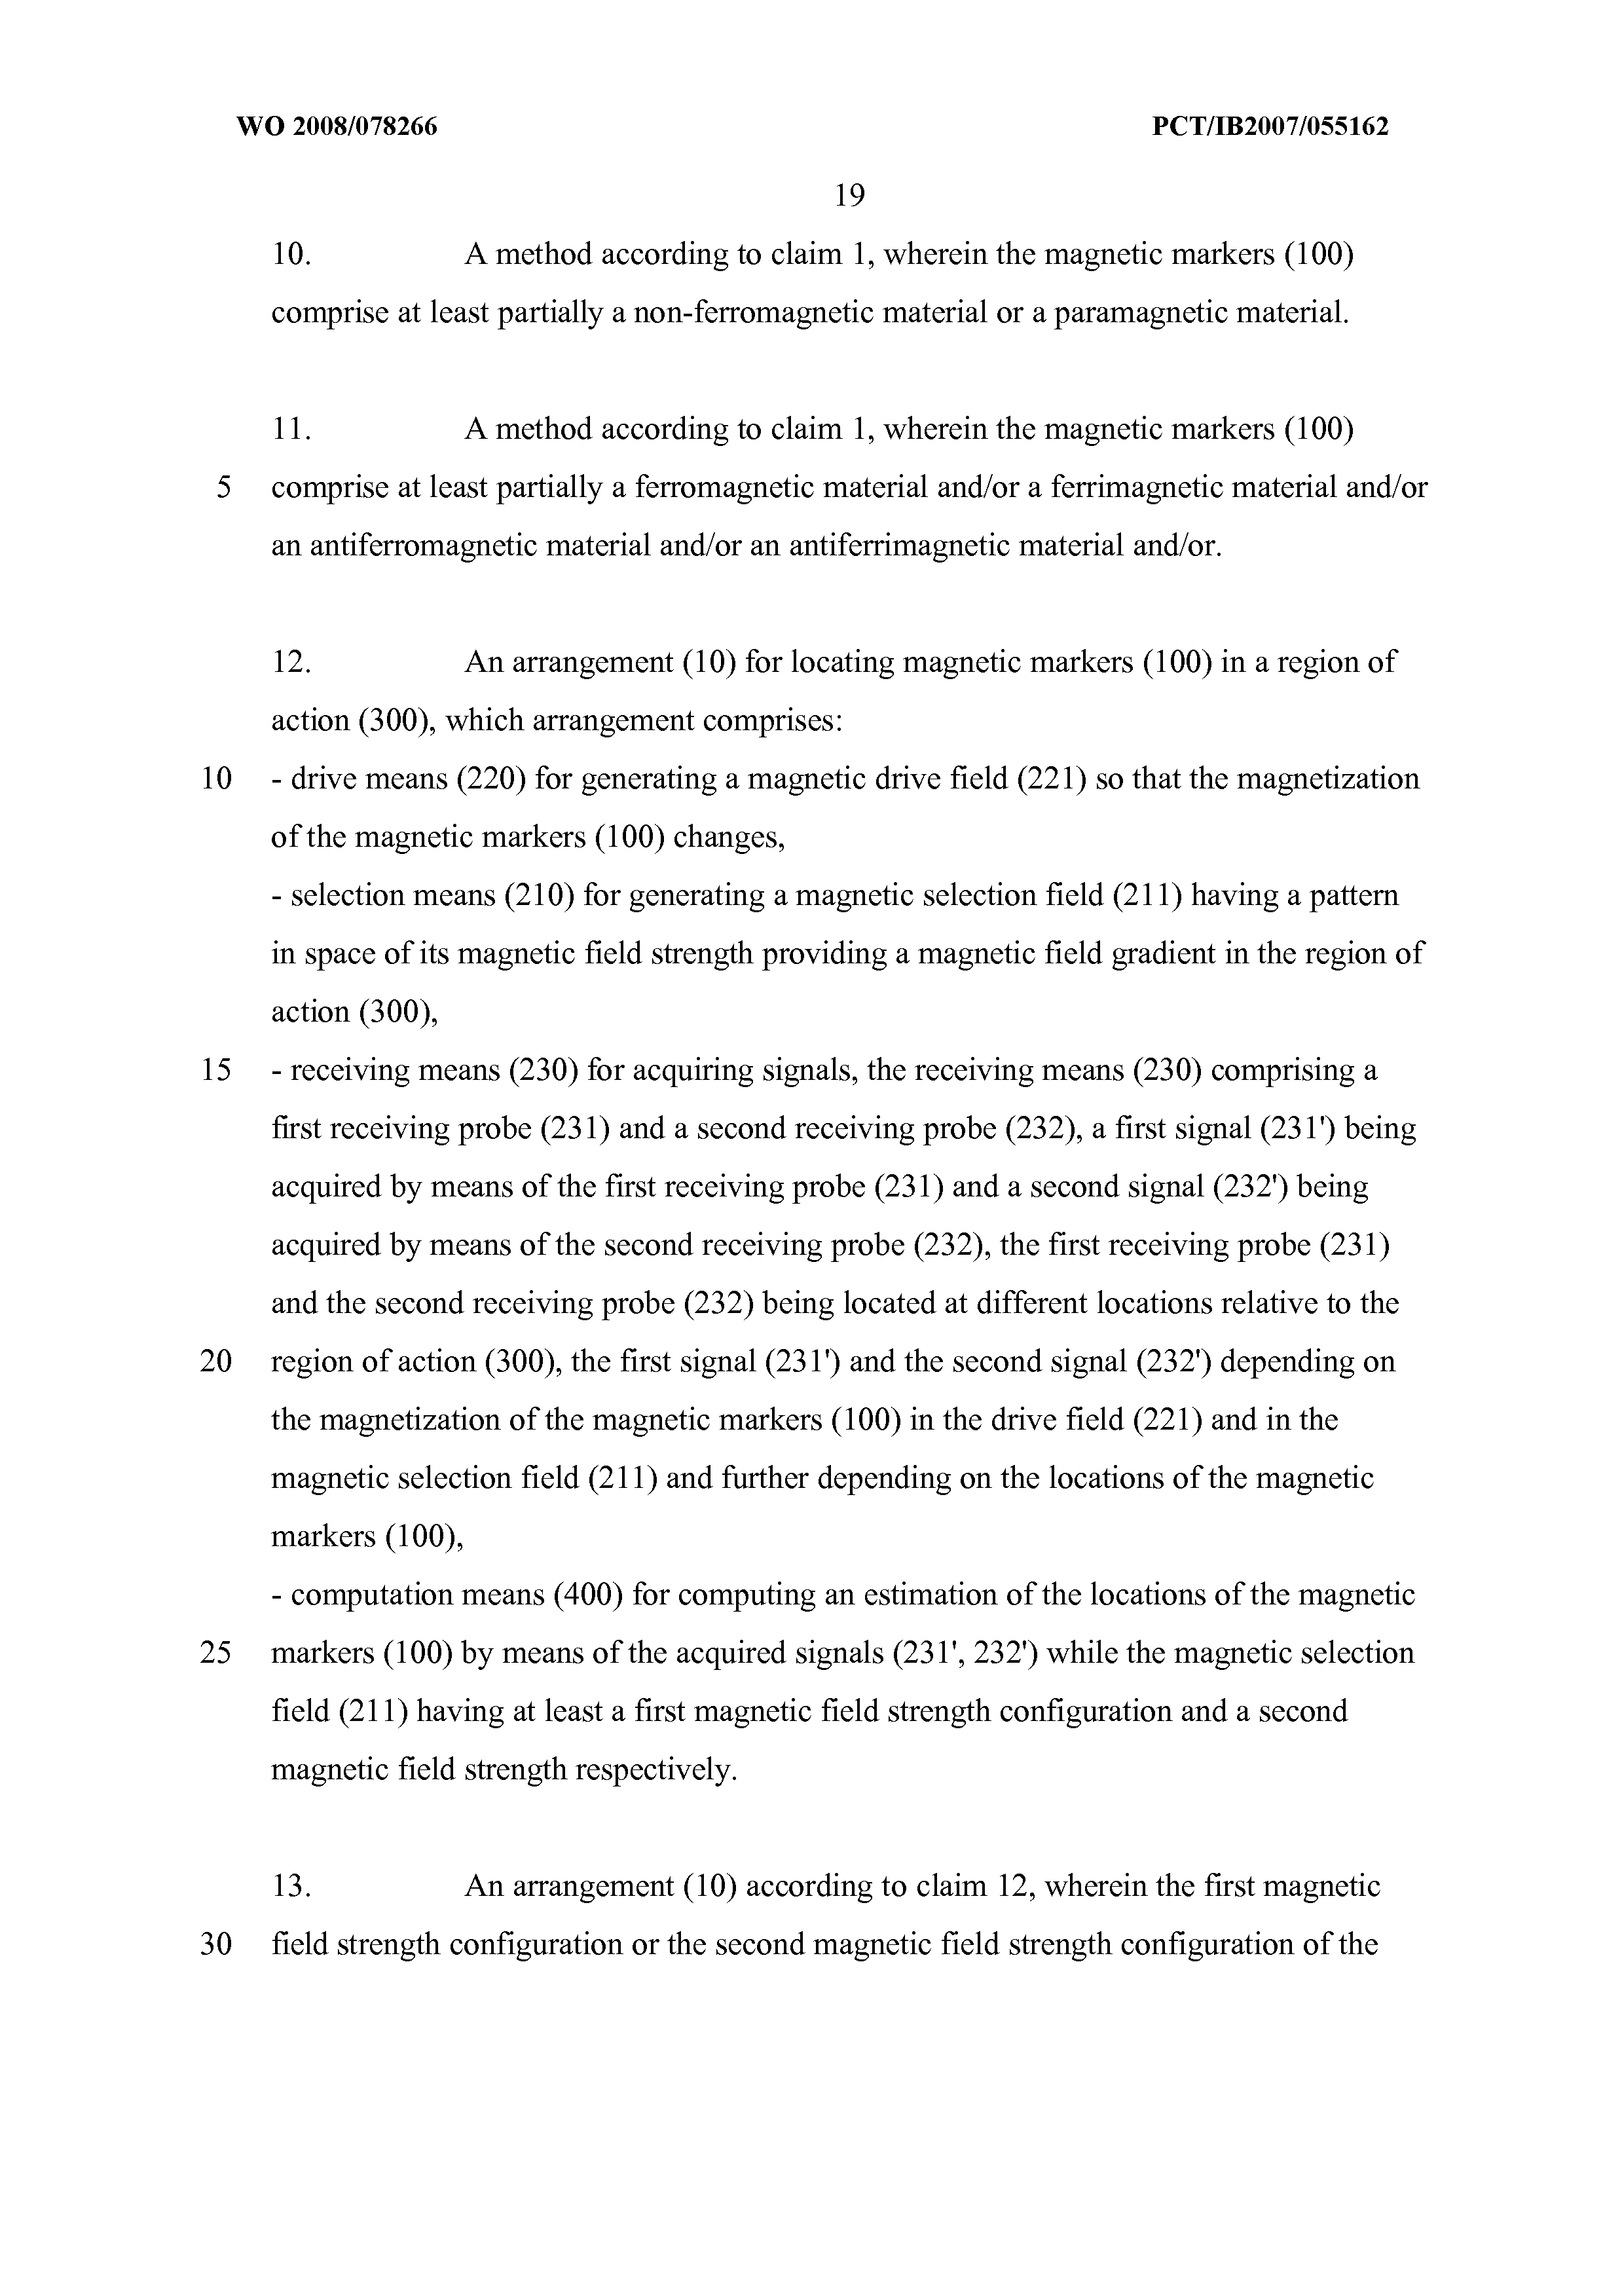 WO 2008/078266 A2 - Method And Arrangement For Locating